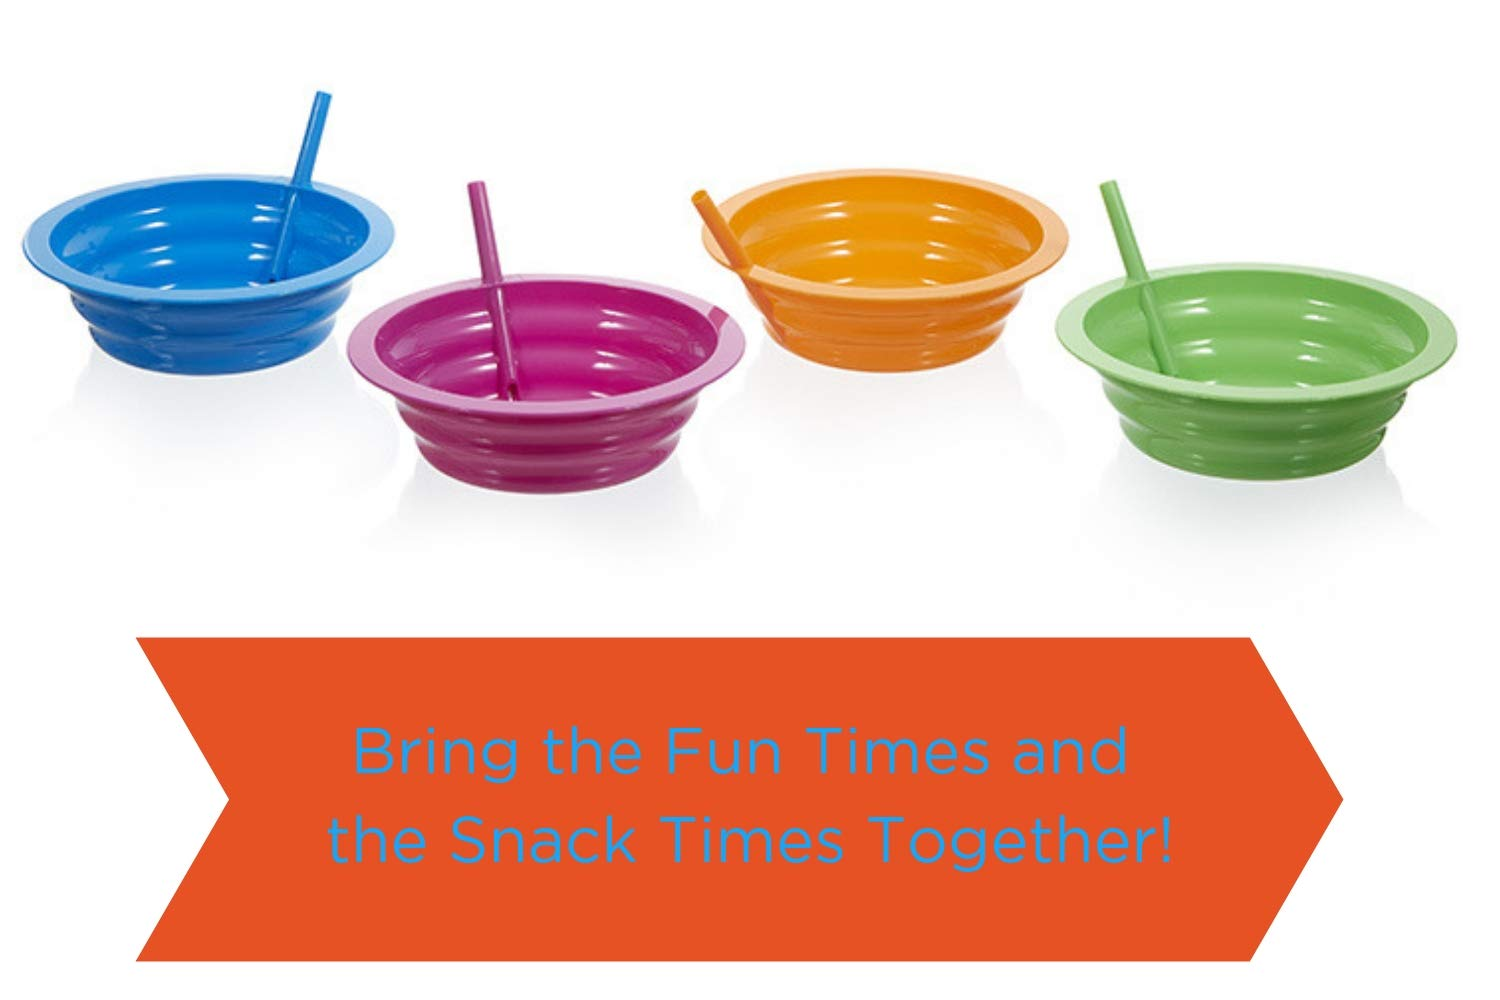 Arrow Sip-A-Bowl With Built In Straw, 22 oz, Blue, Purple,Green, Orange (4 Pack) by Arrow Home Products (Image #4)